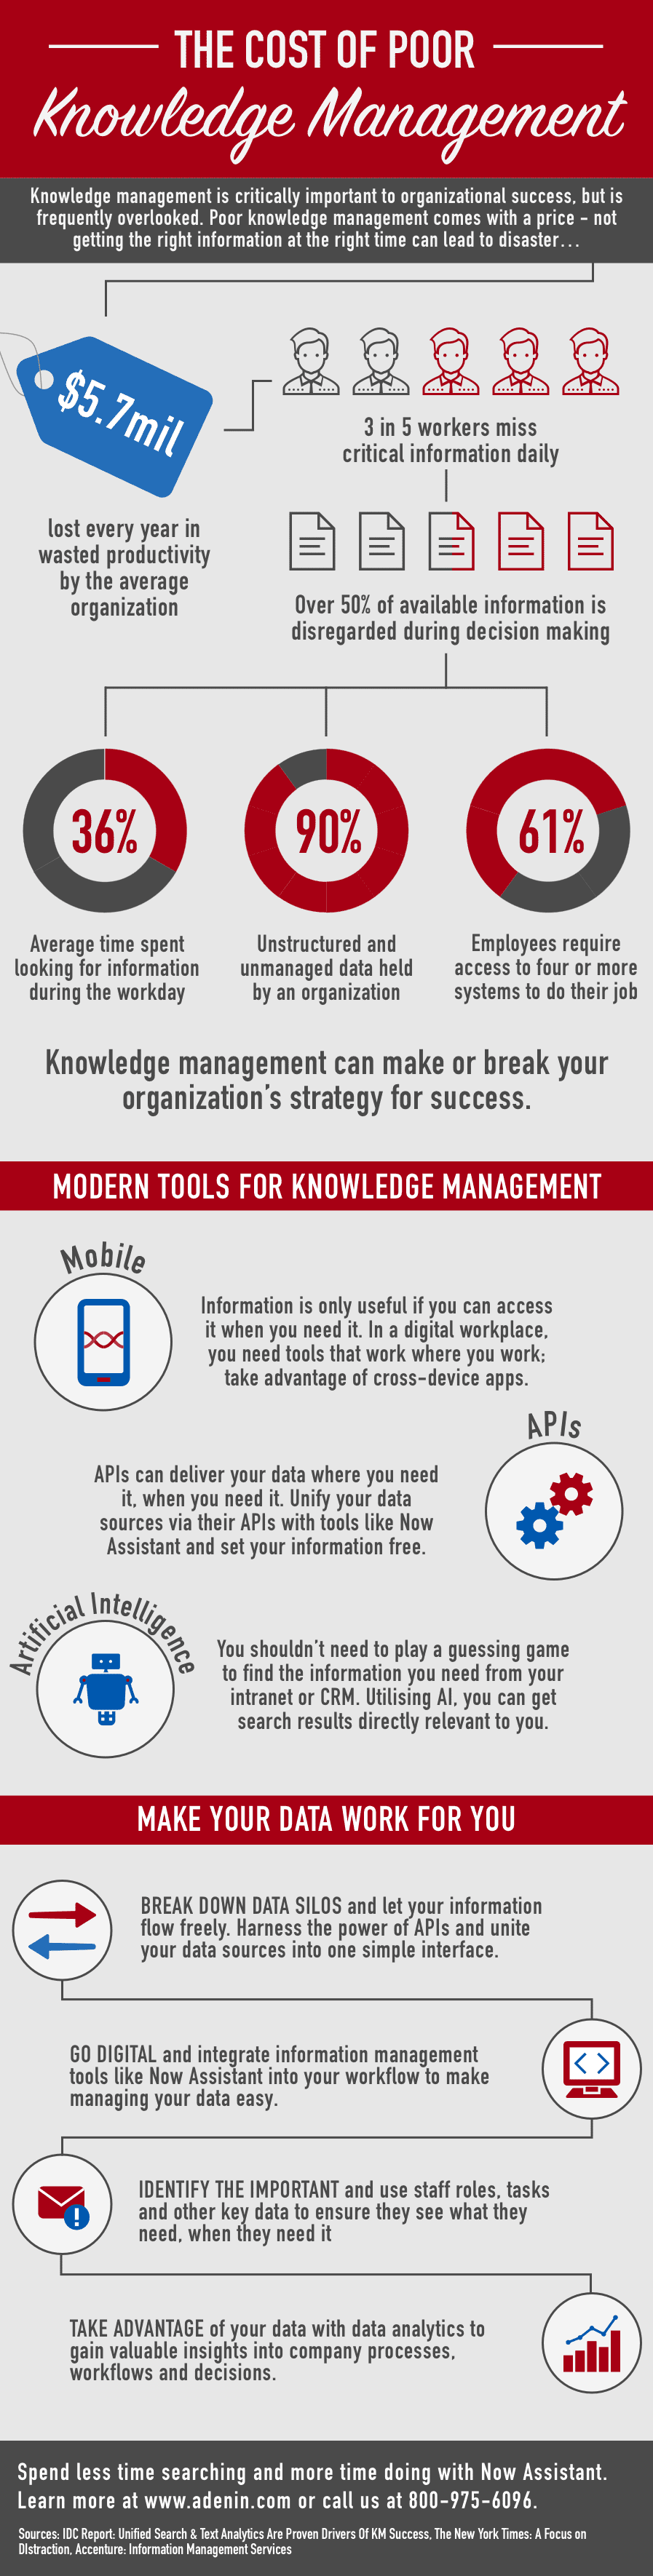 The Cost of Poor Knowledge Management - Infographic